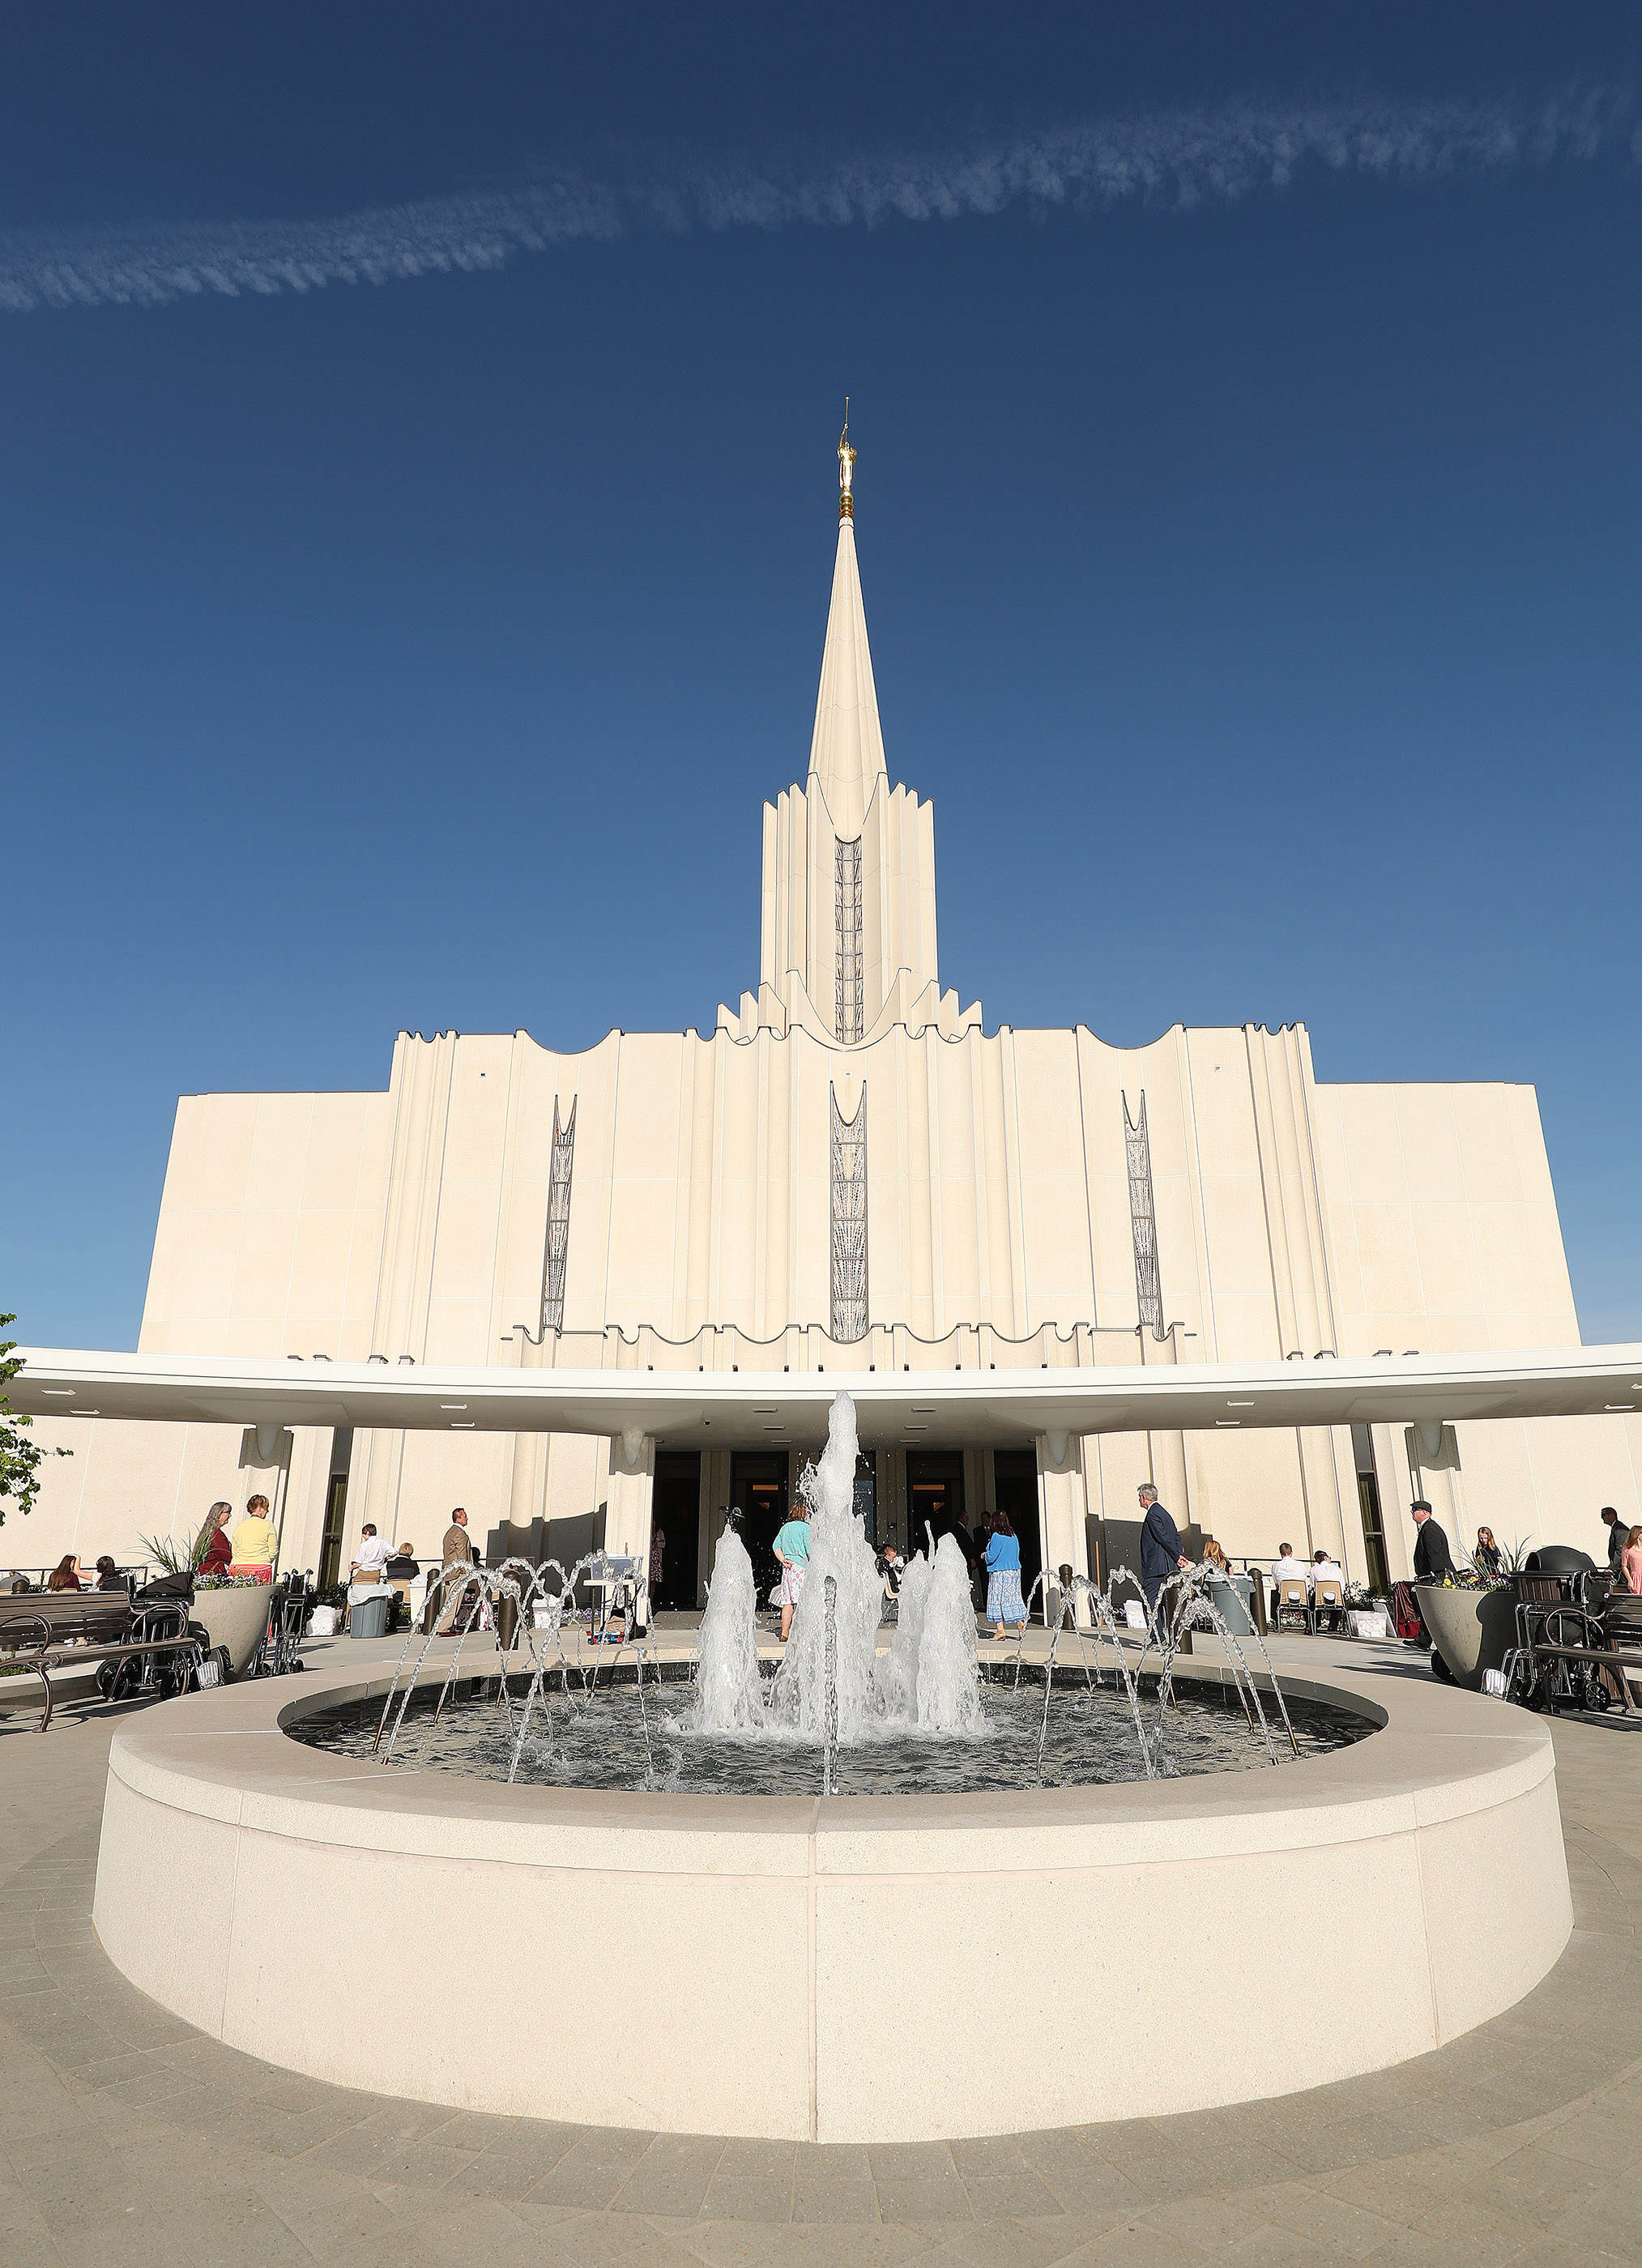 Attendees arrive for the Jordan River Utah Temple rededication in South Jordan on Sunday, May 20, 2018.